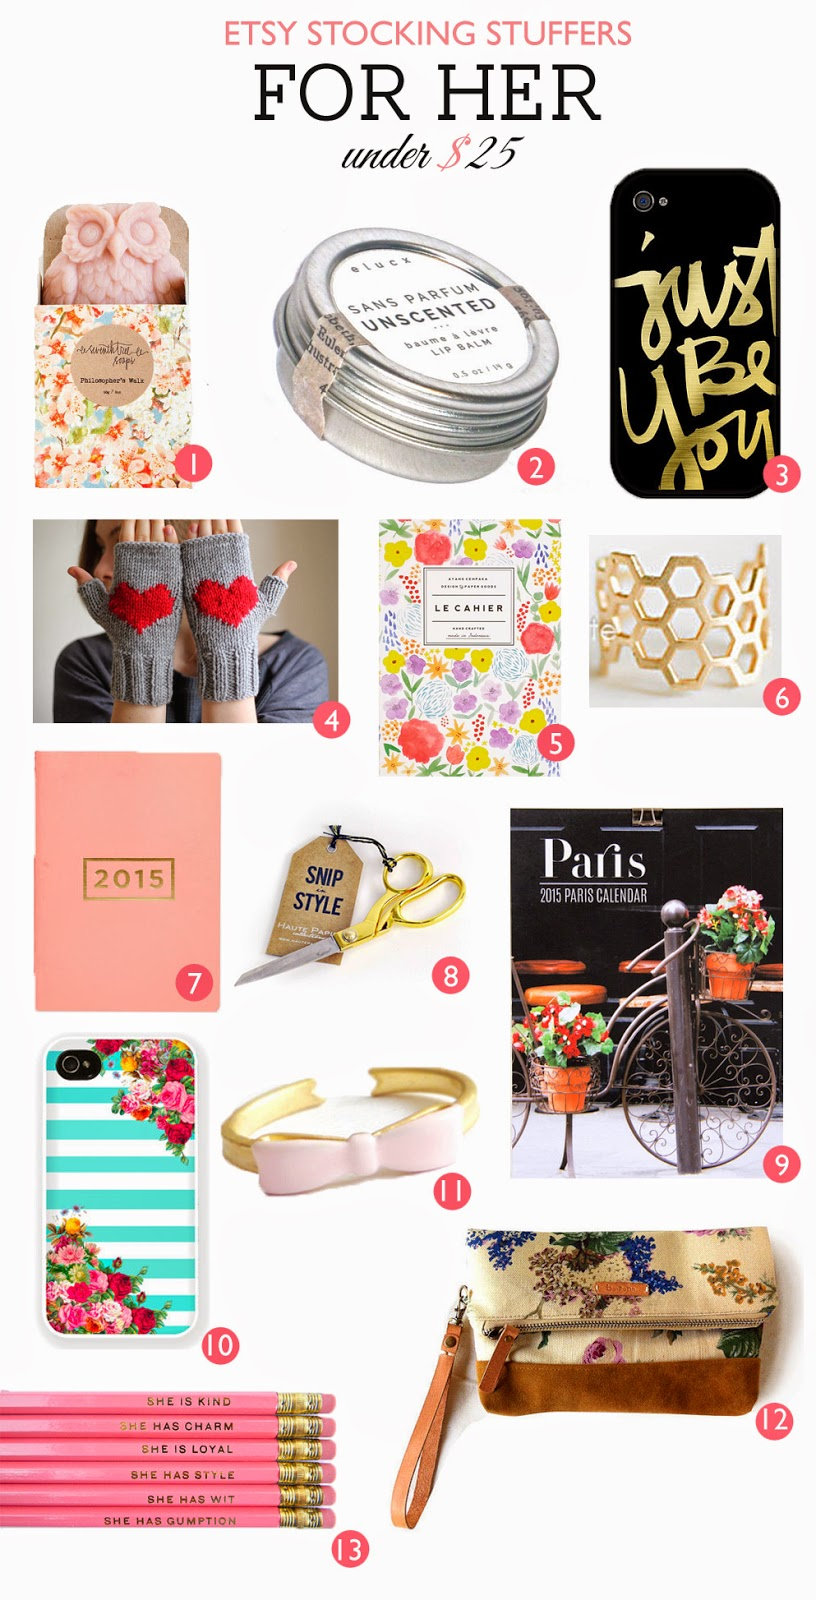 etsy stocking stuffers for her under $25